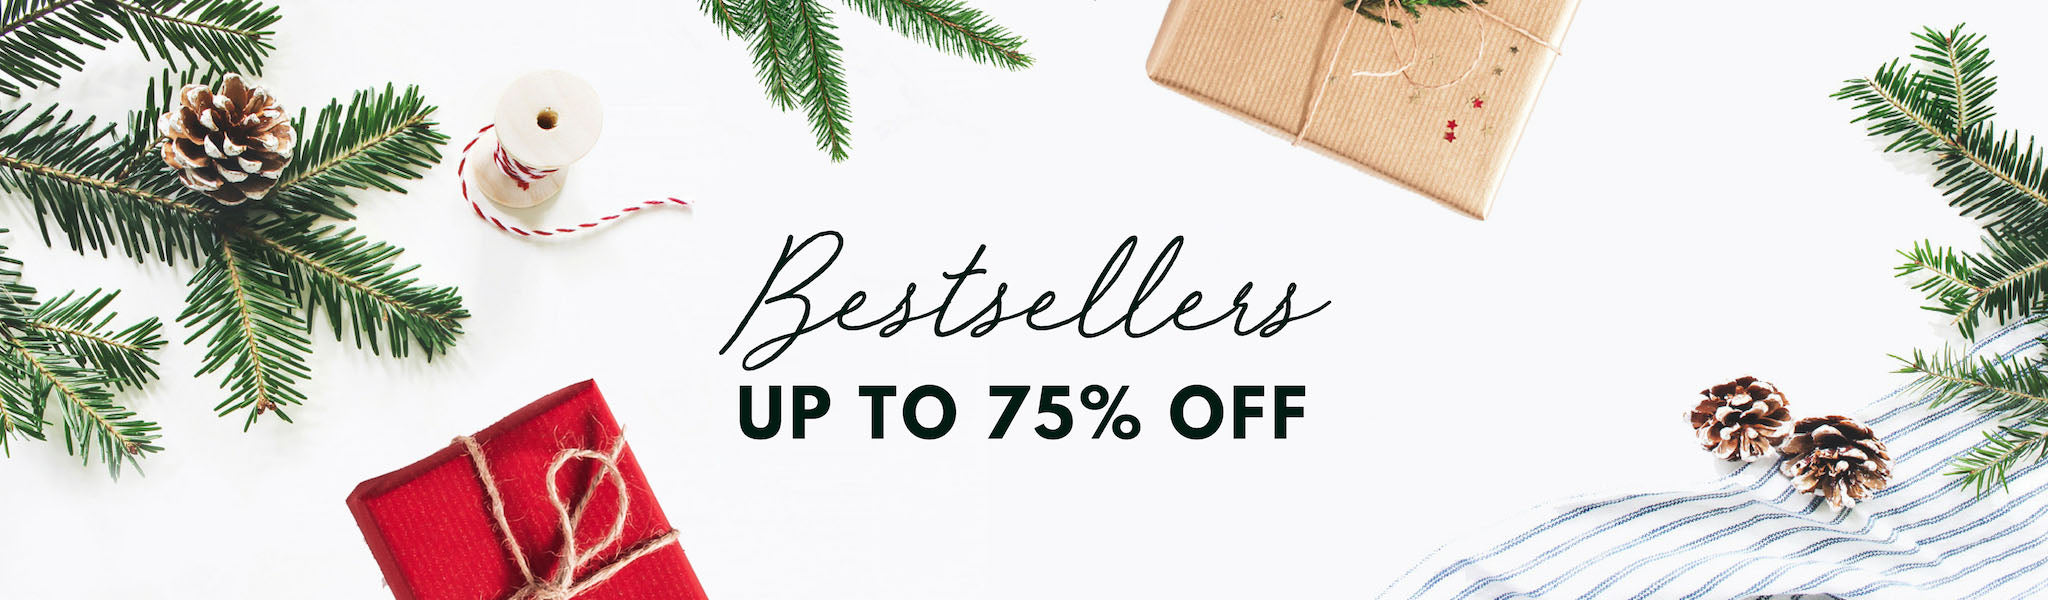 Black Friday Bestsellers